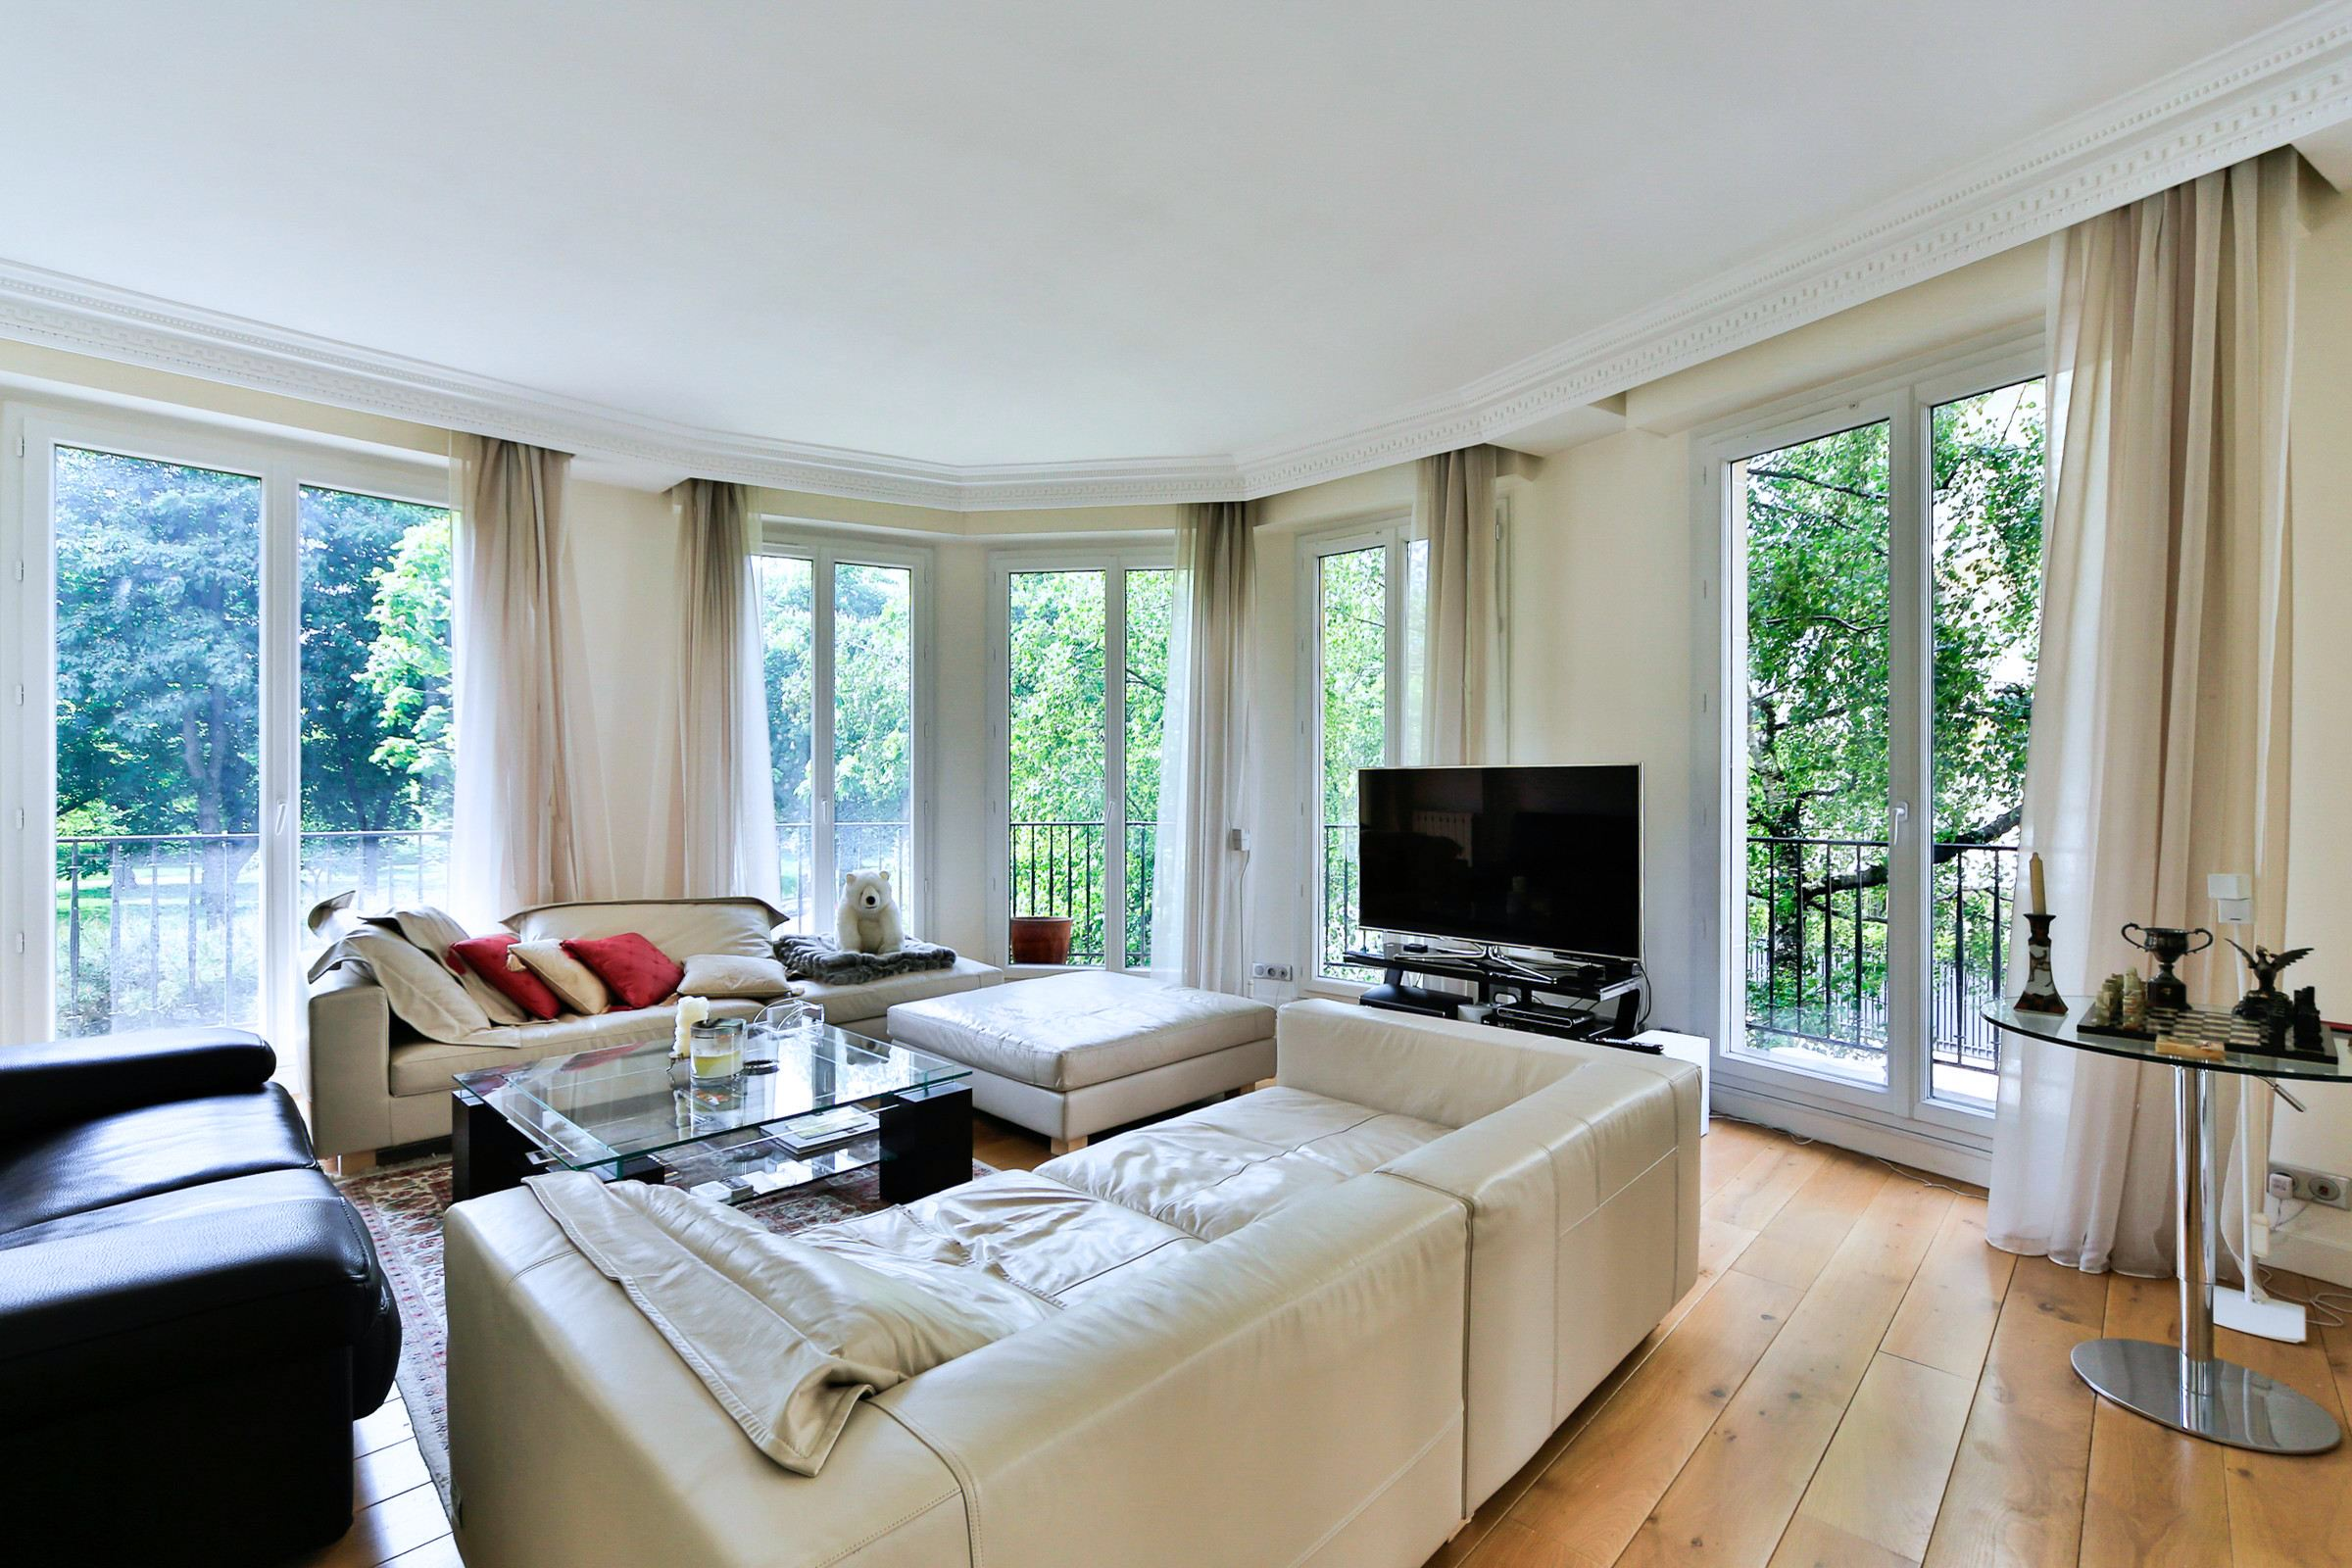 Property For Sale at Neuilly - Bois de Boulogne - Apartment, in perfect condition.